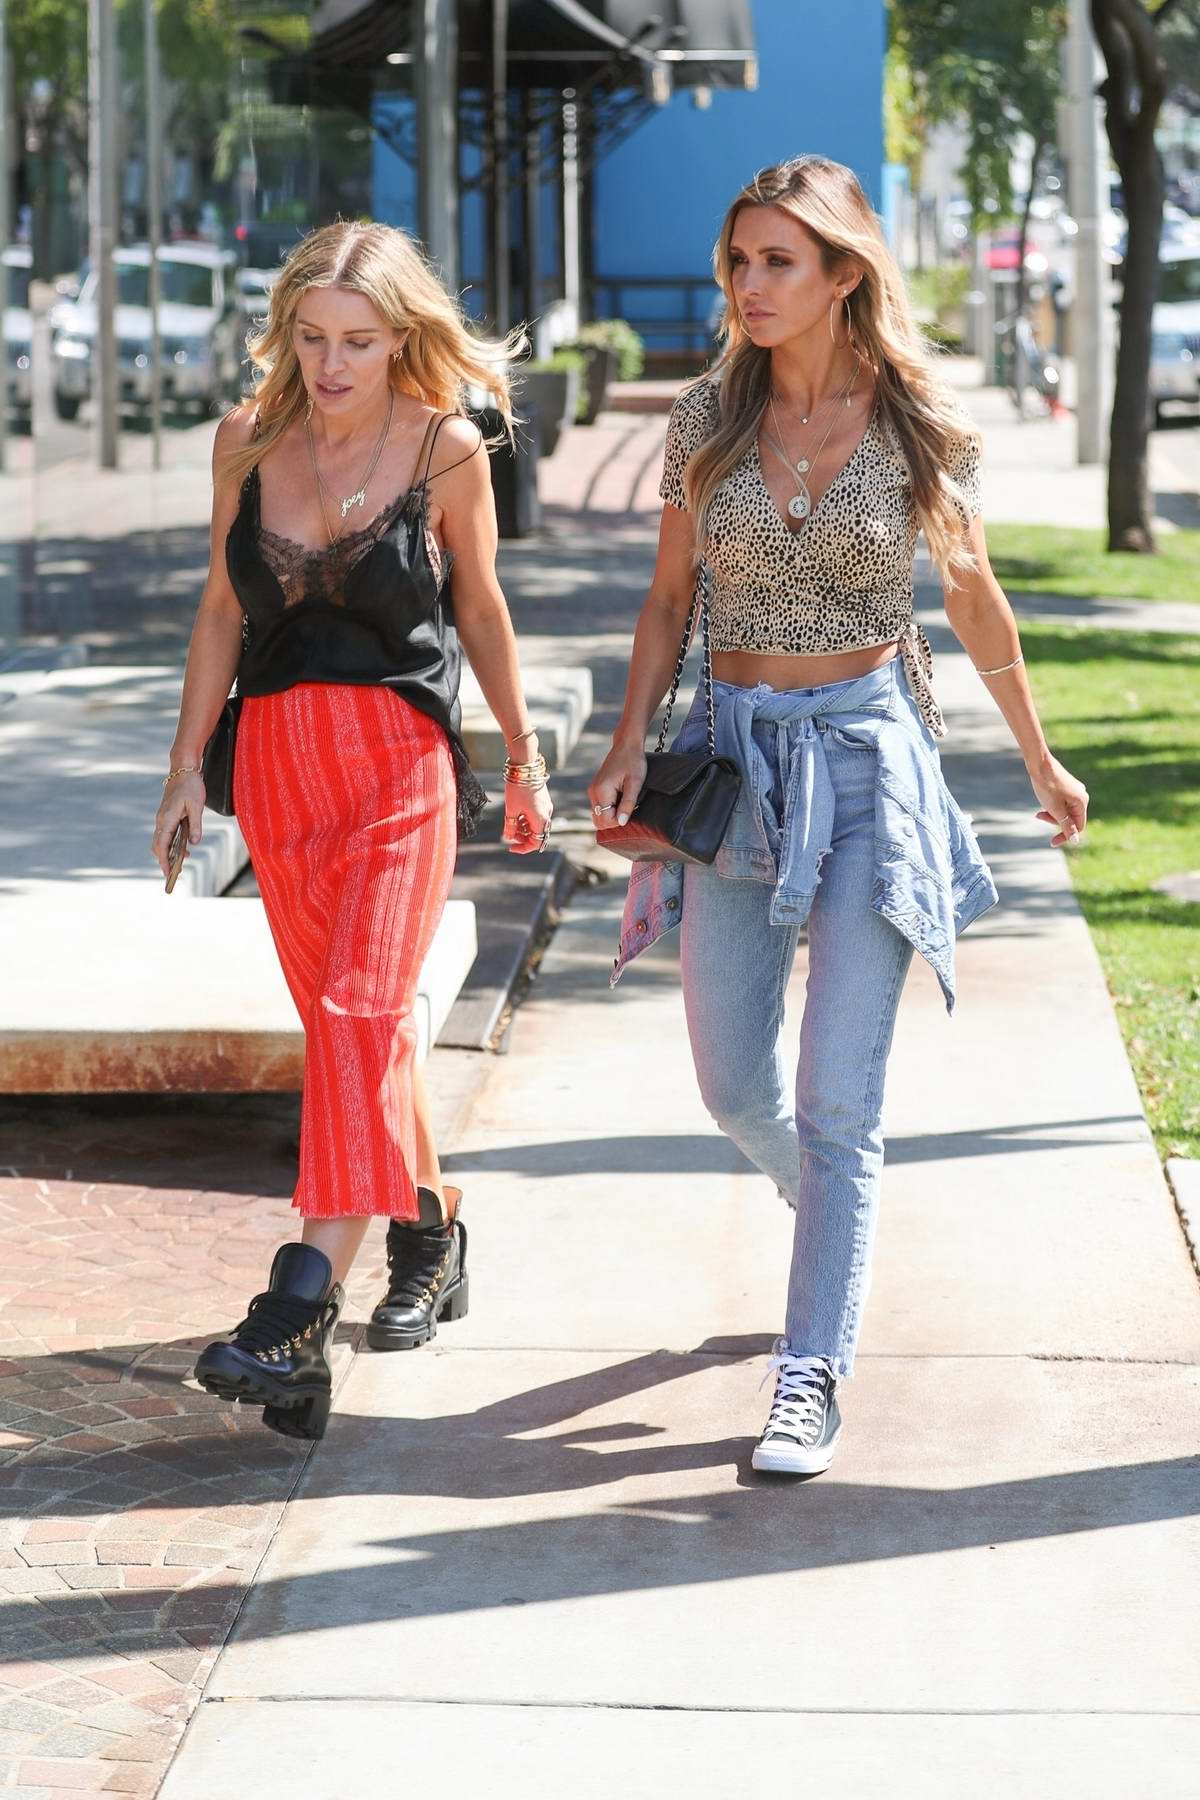 Audrina Patridge films 'The Hills' reboot at Couture Kids in West Hollywood, Los Angeles